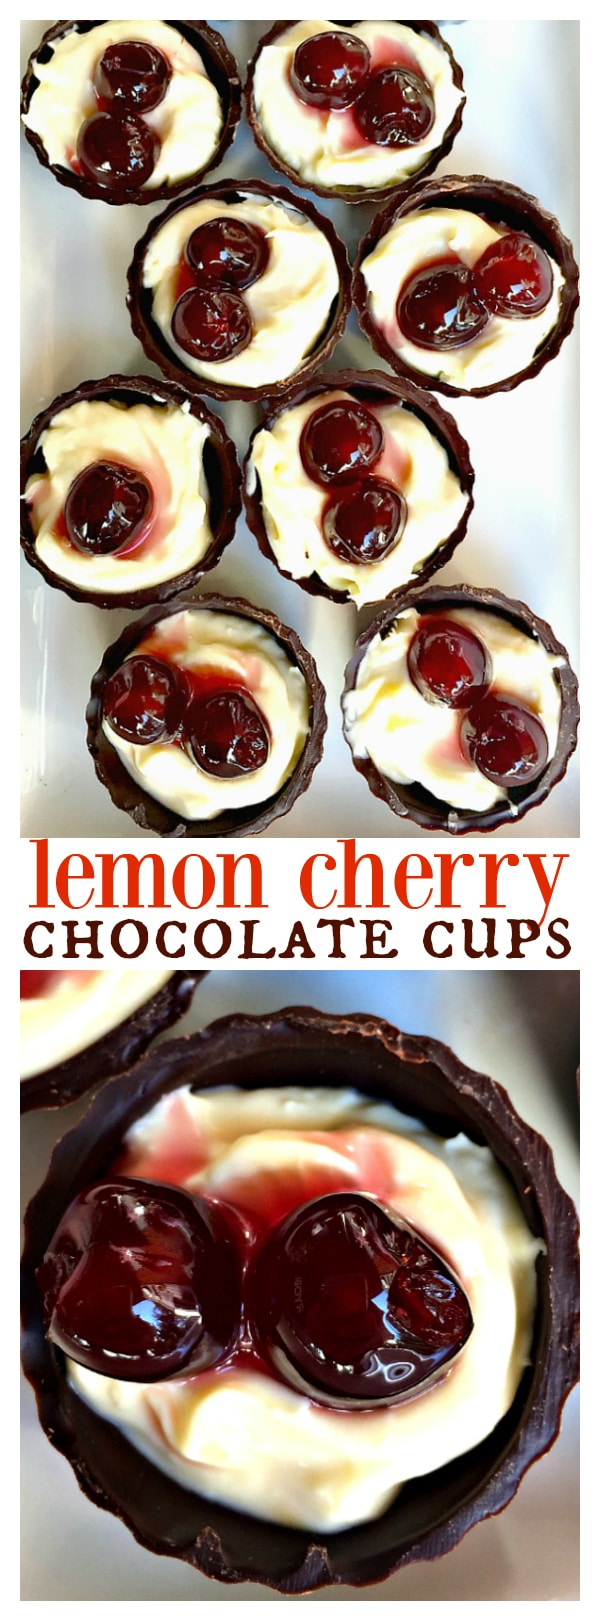 Lemon Cherry Chocolate Cups for easy entertaining